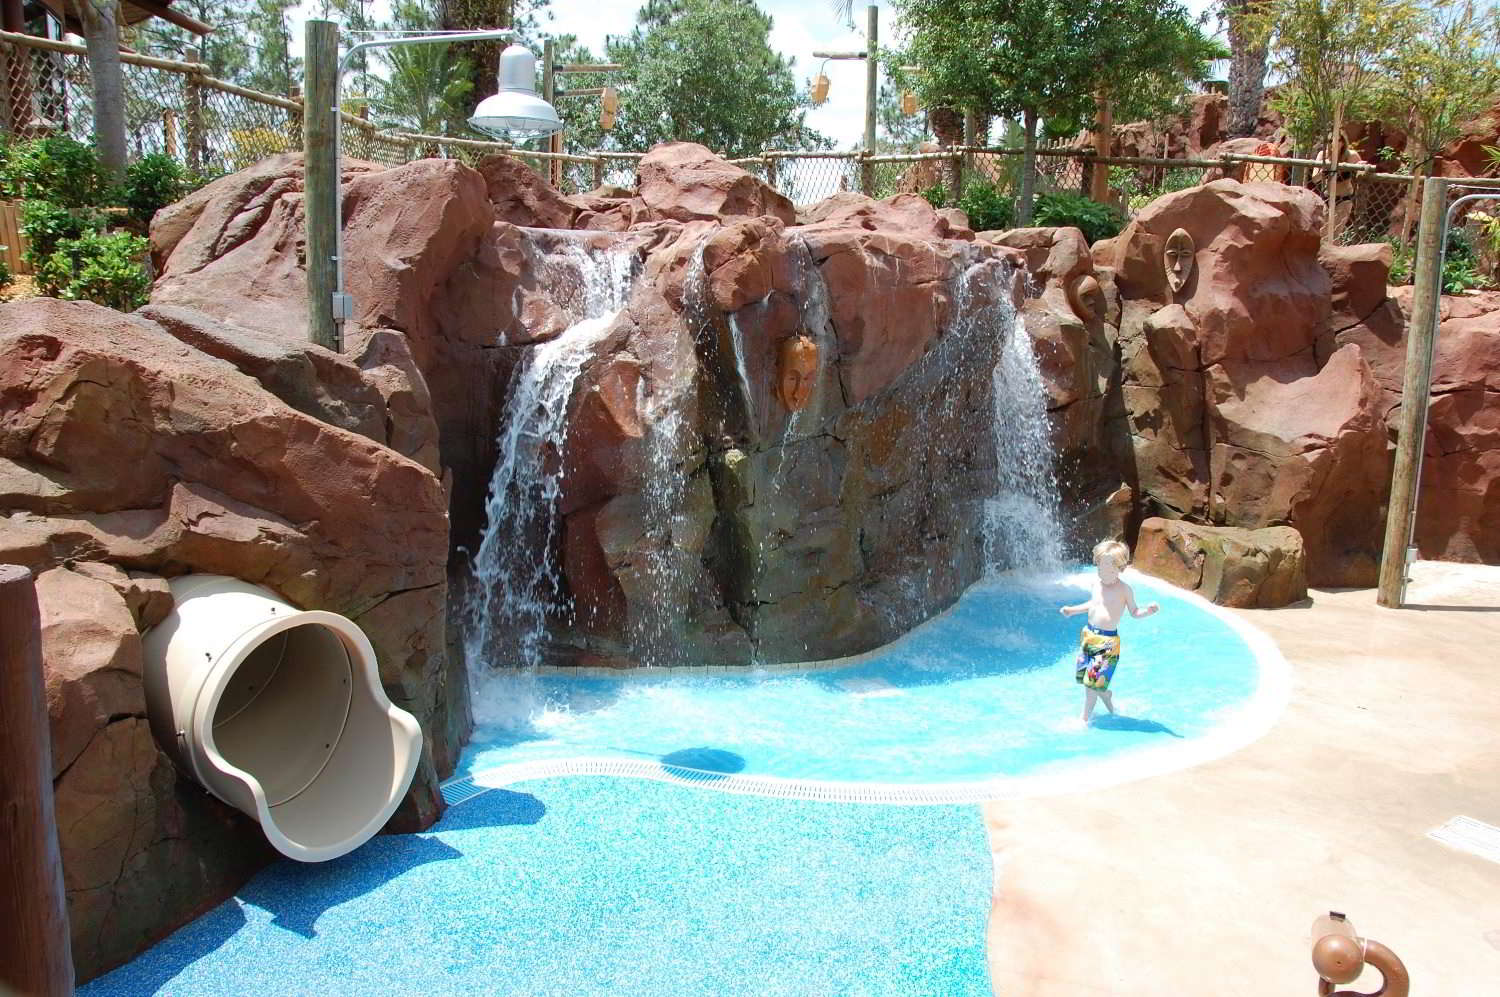 Disney's Animal Kingdom Lodge - Kidani Village has a smaller pool than Jambo house but has an extensive wet play area for kids with three different zones geared towards different ages.